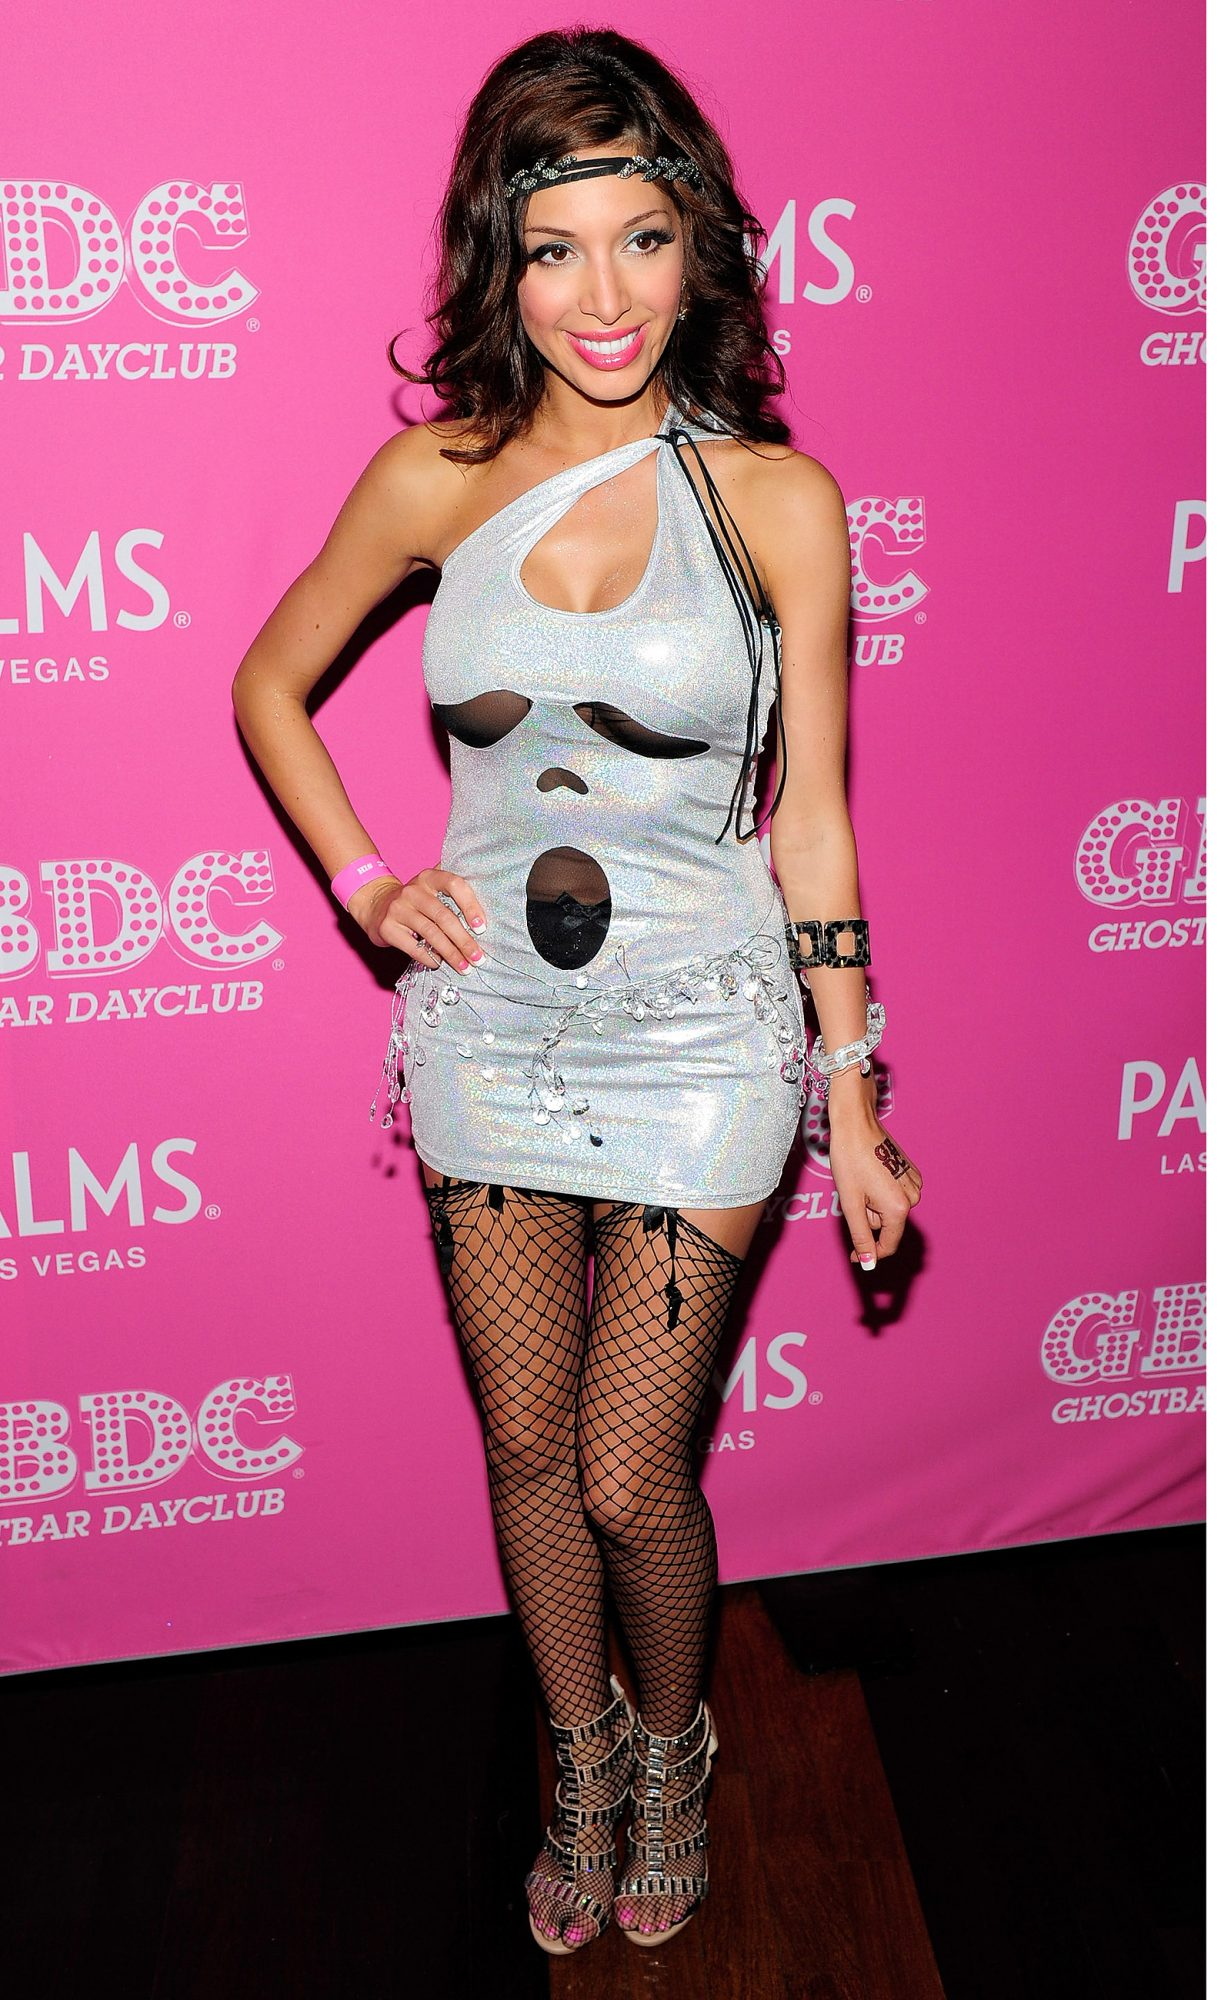 Farrah Abraham Hosts Toga Party At Ghostbar Dayclub At The Palms